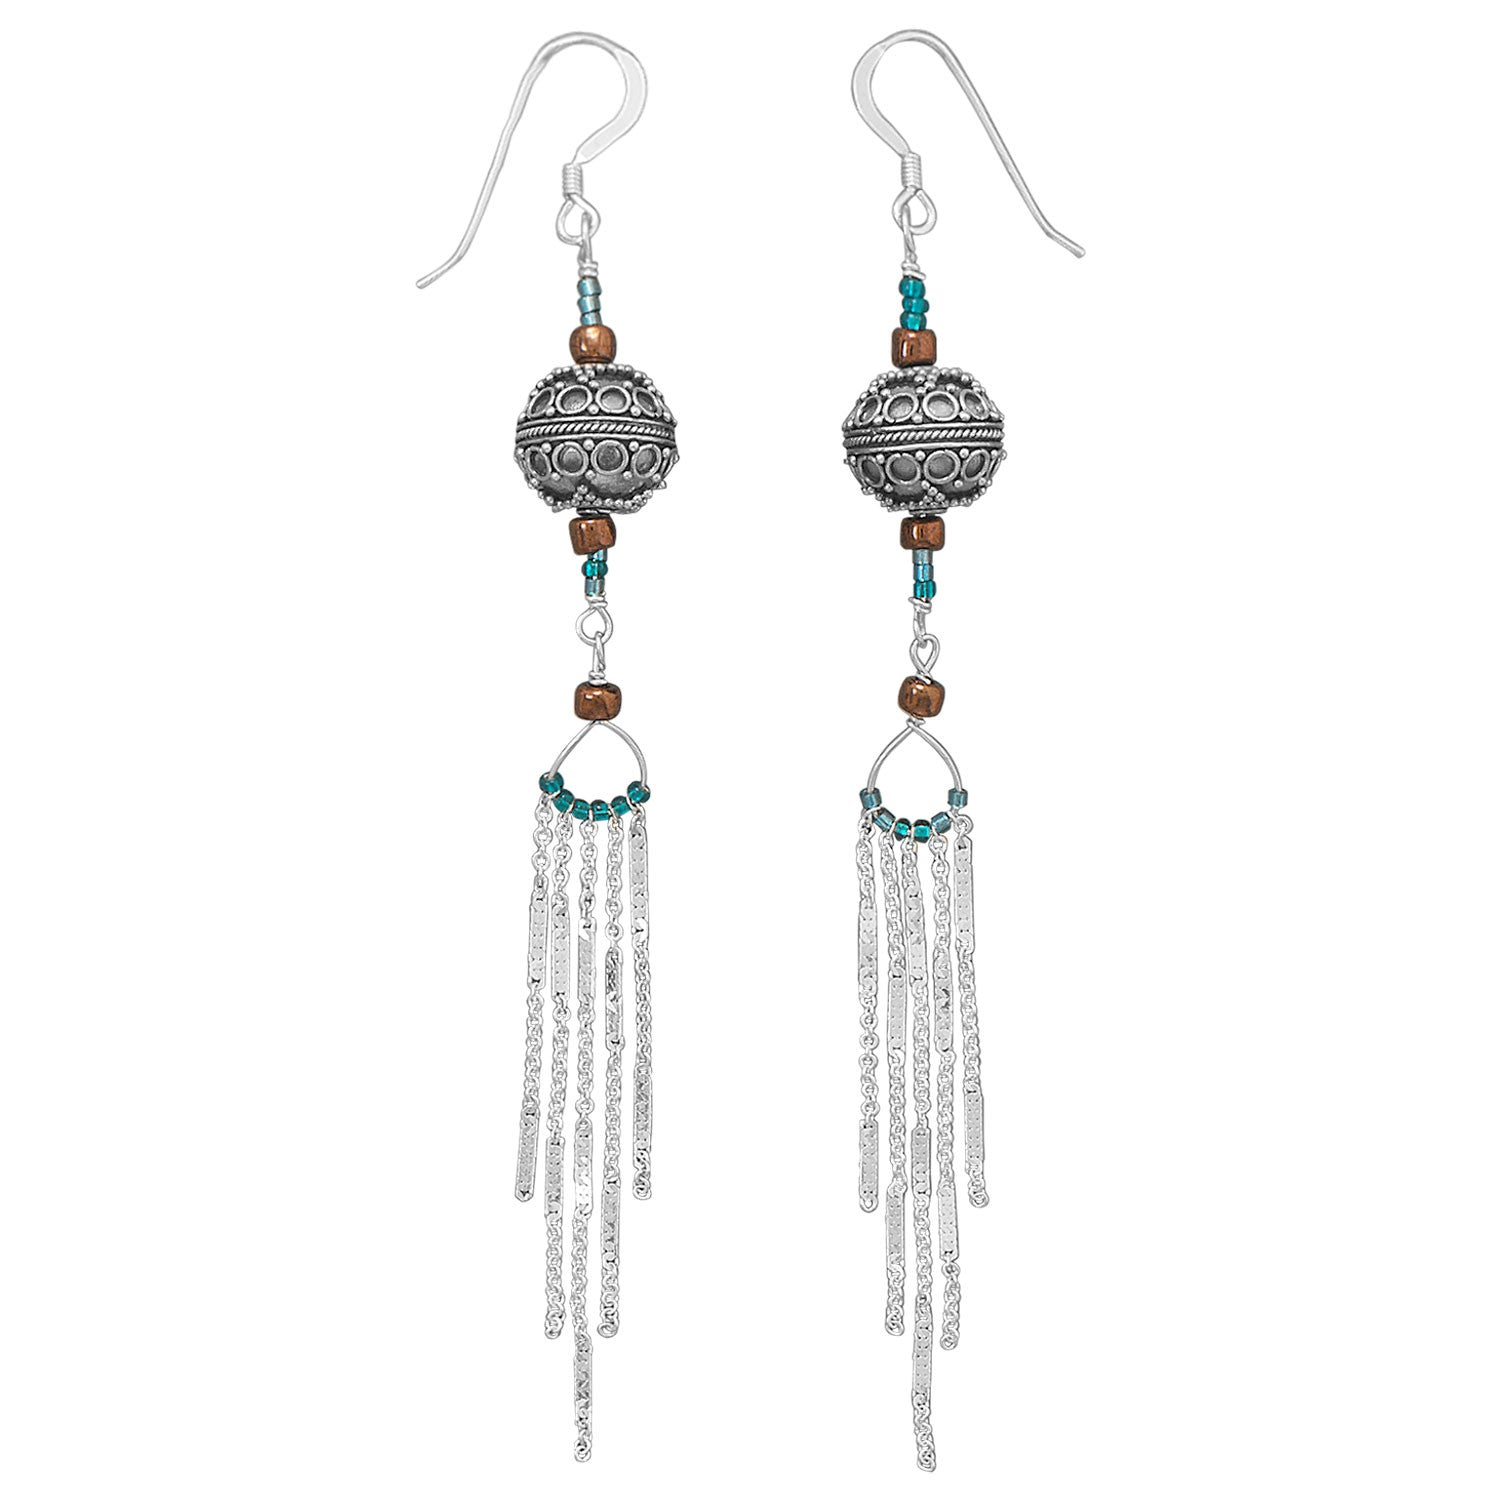 ''5'''' Chain Drop Earrings with Bali and GLASS BEADS''